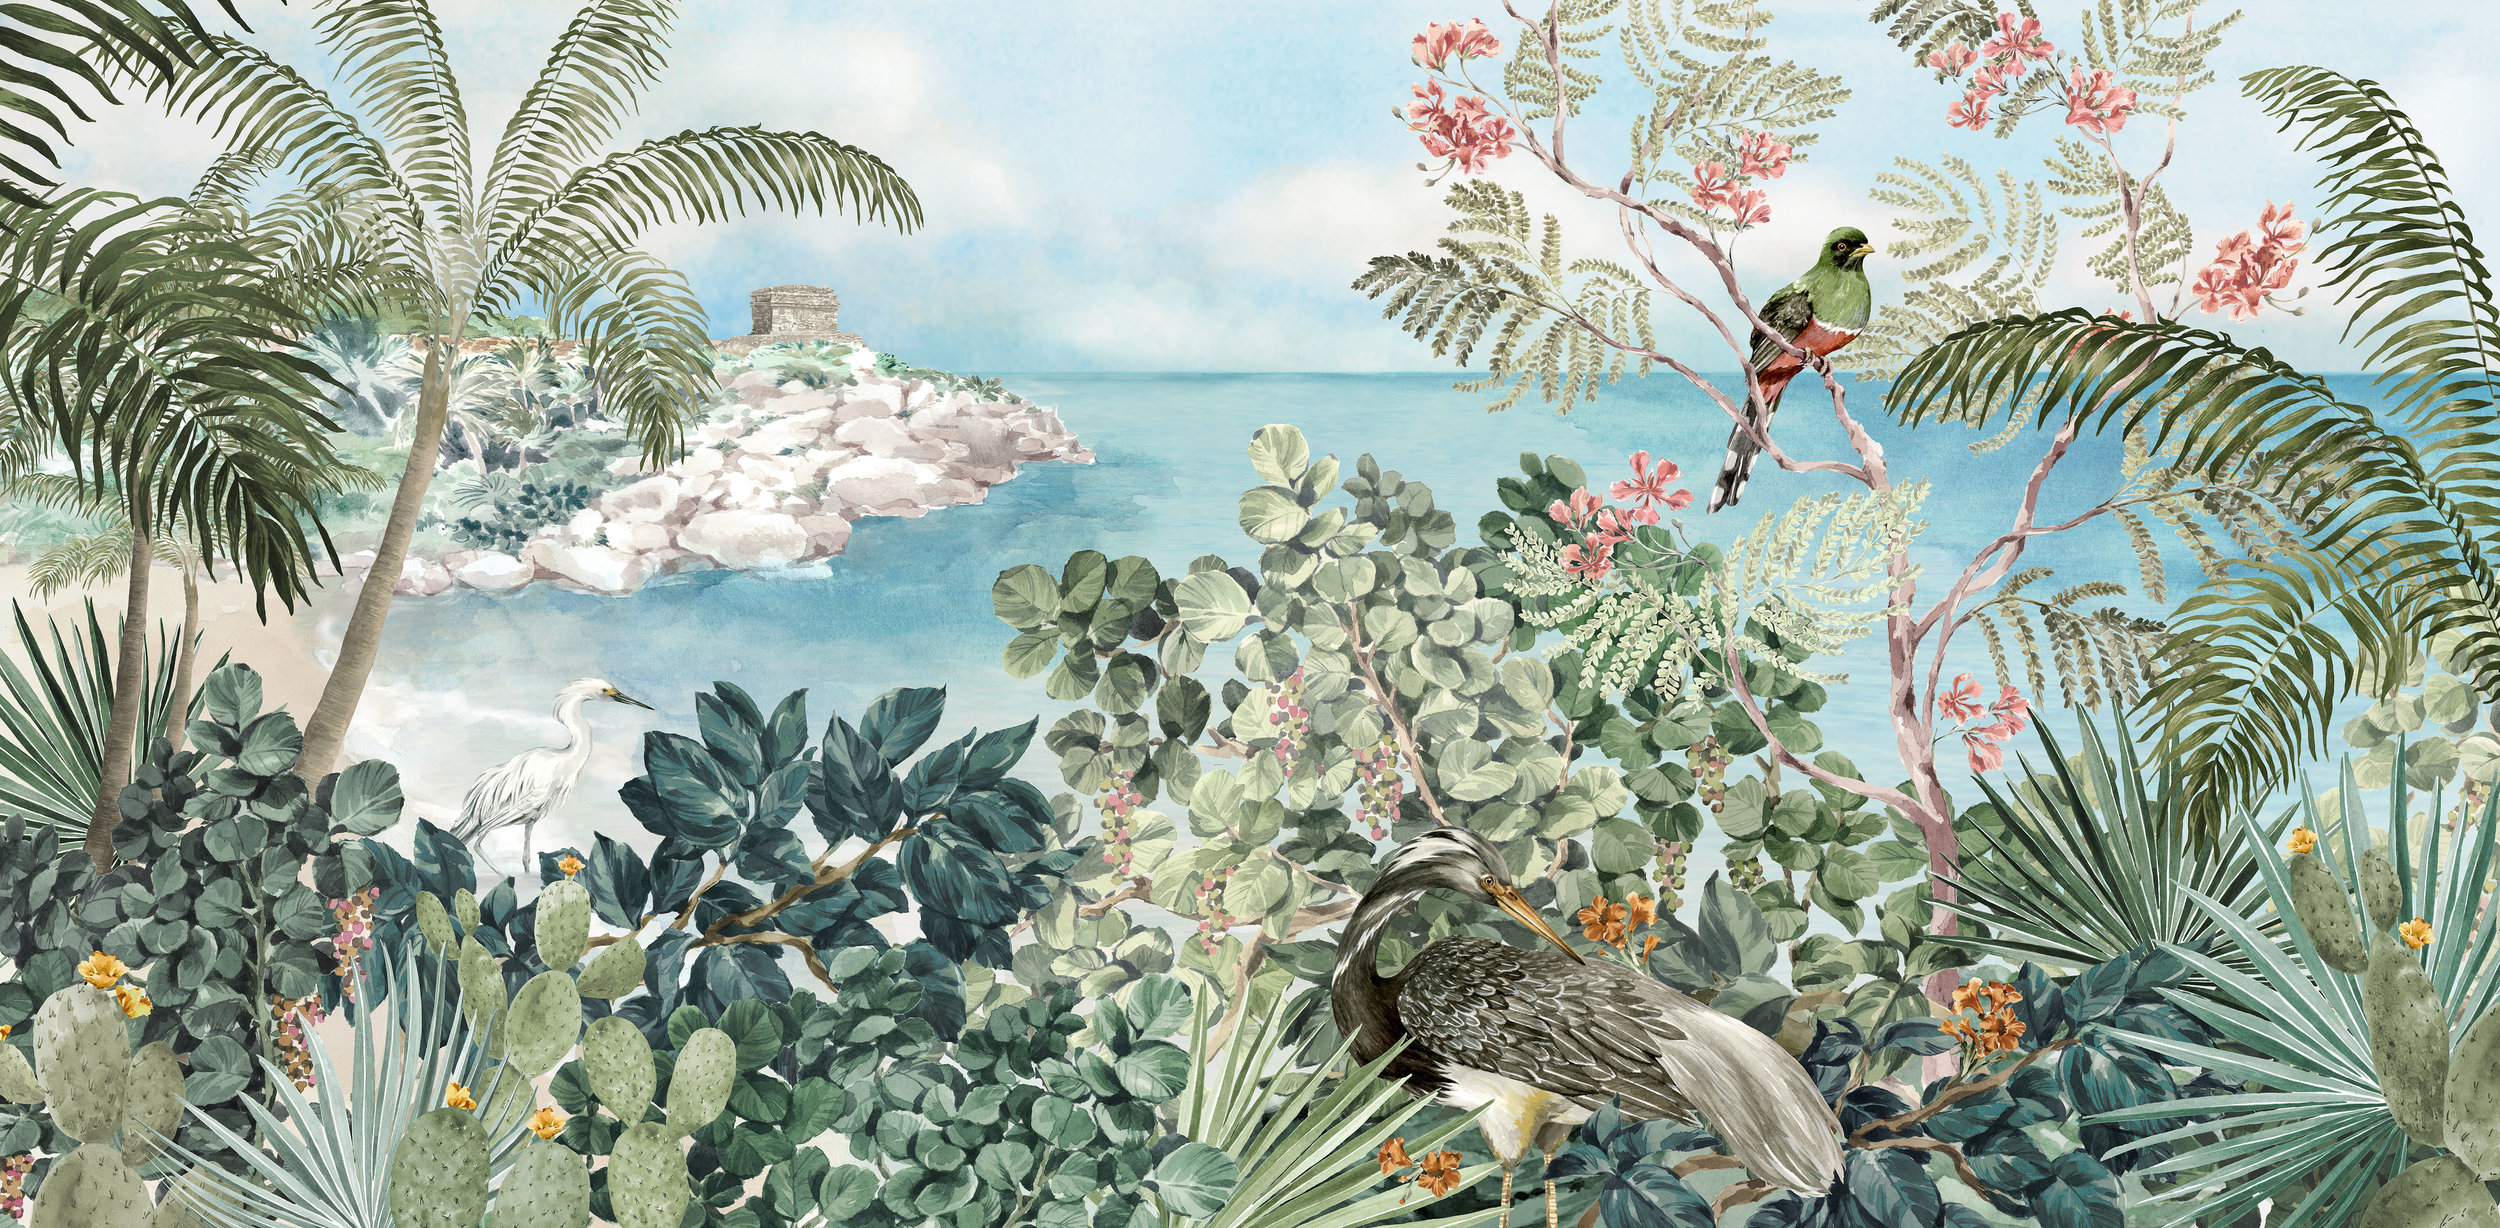 Tulum_Tapestry_flat_revised.jpg